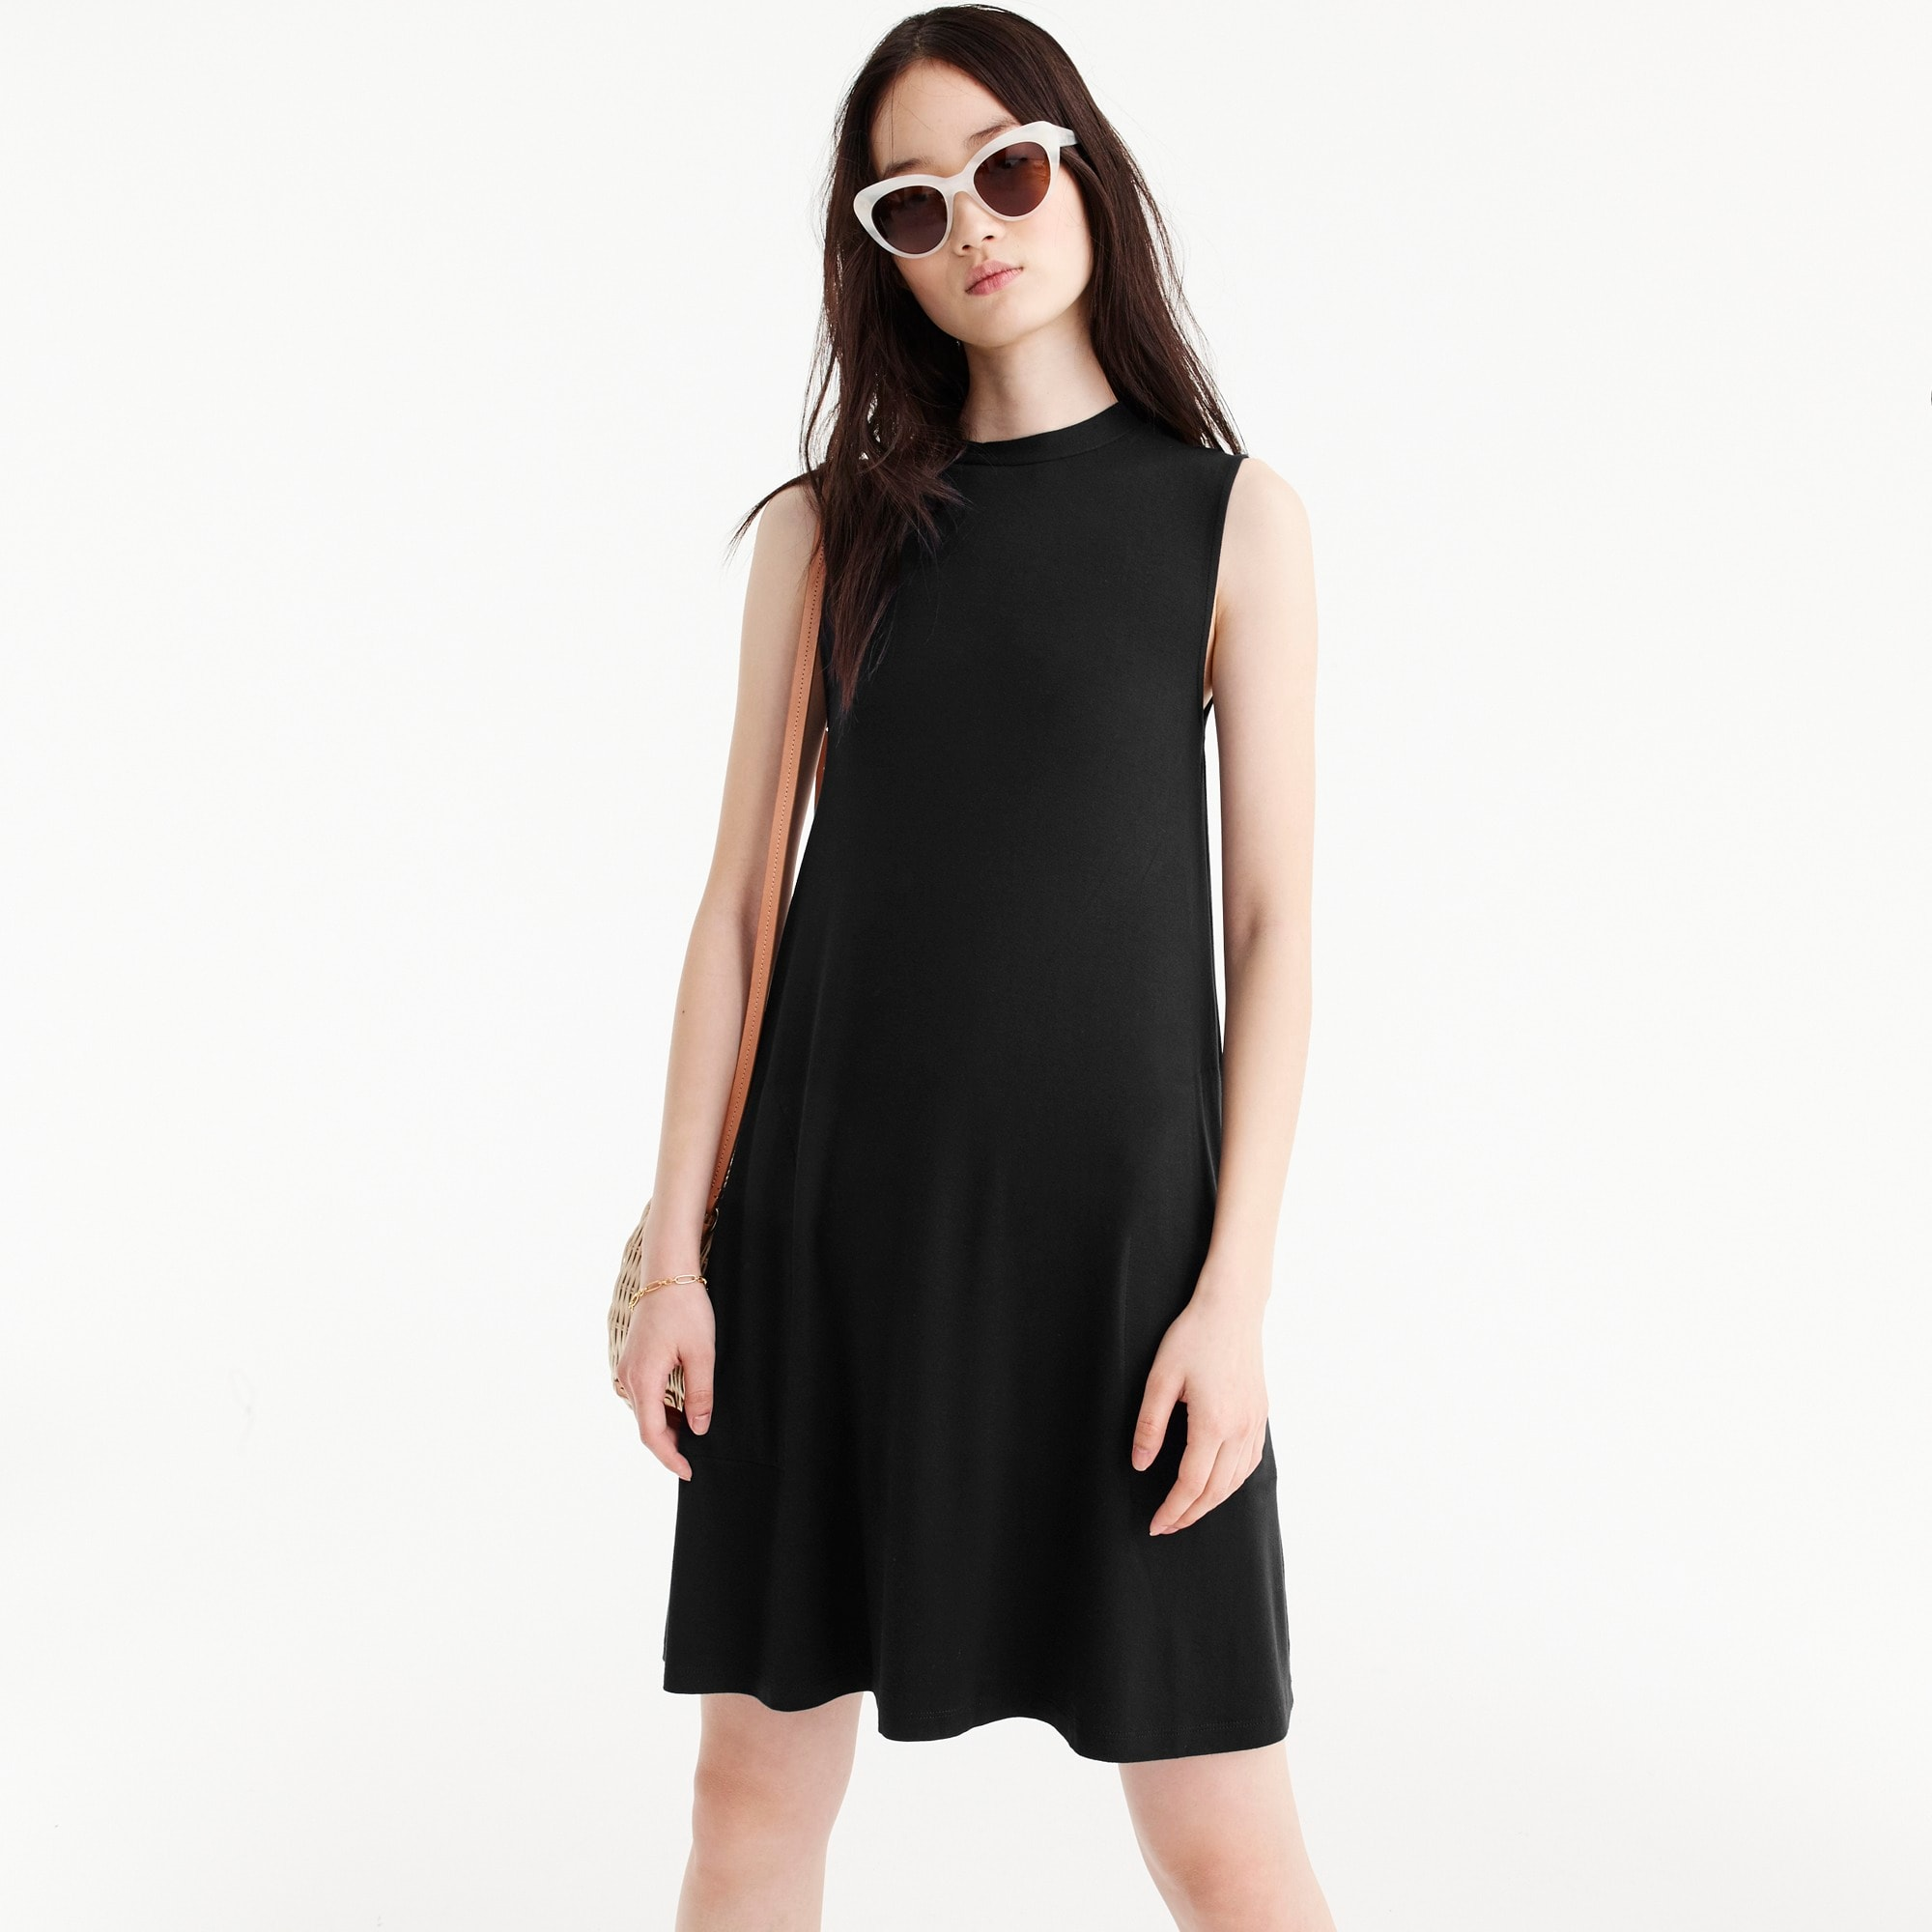 Swingy sleeveless dress